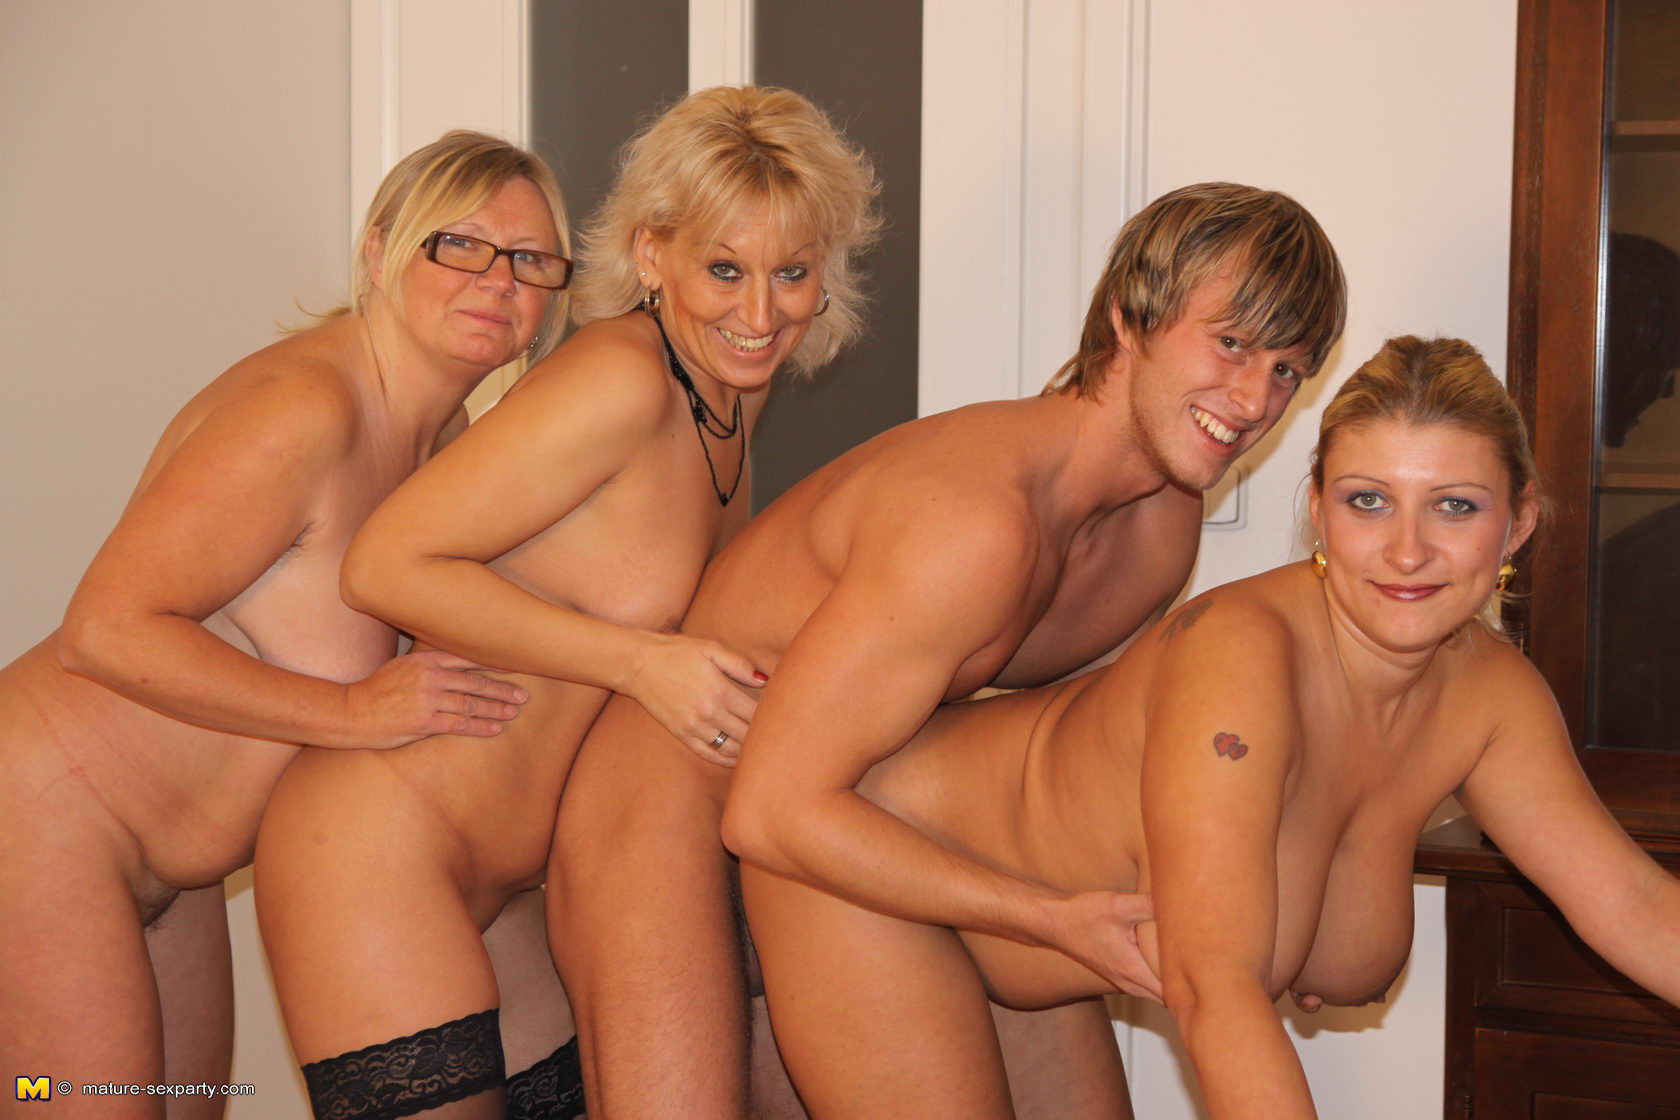 Mature sex parties